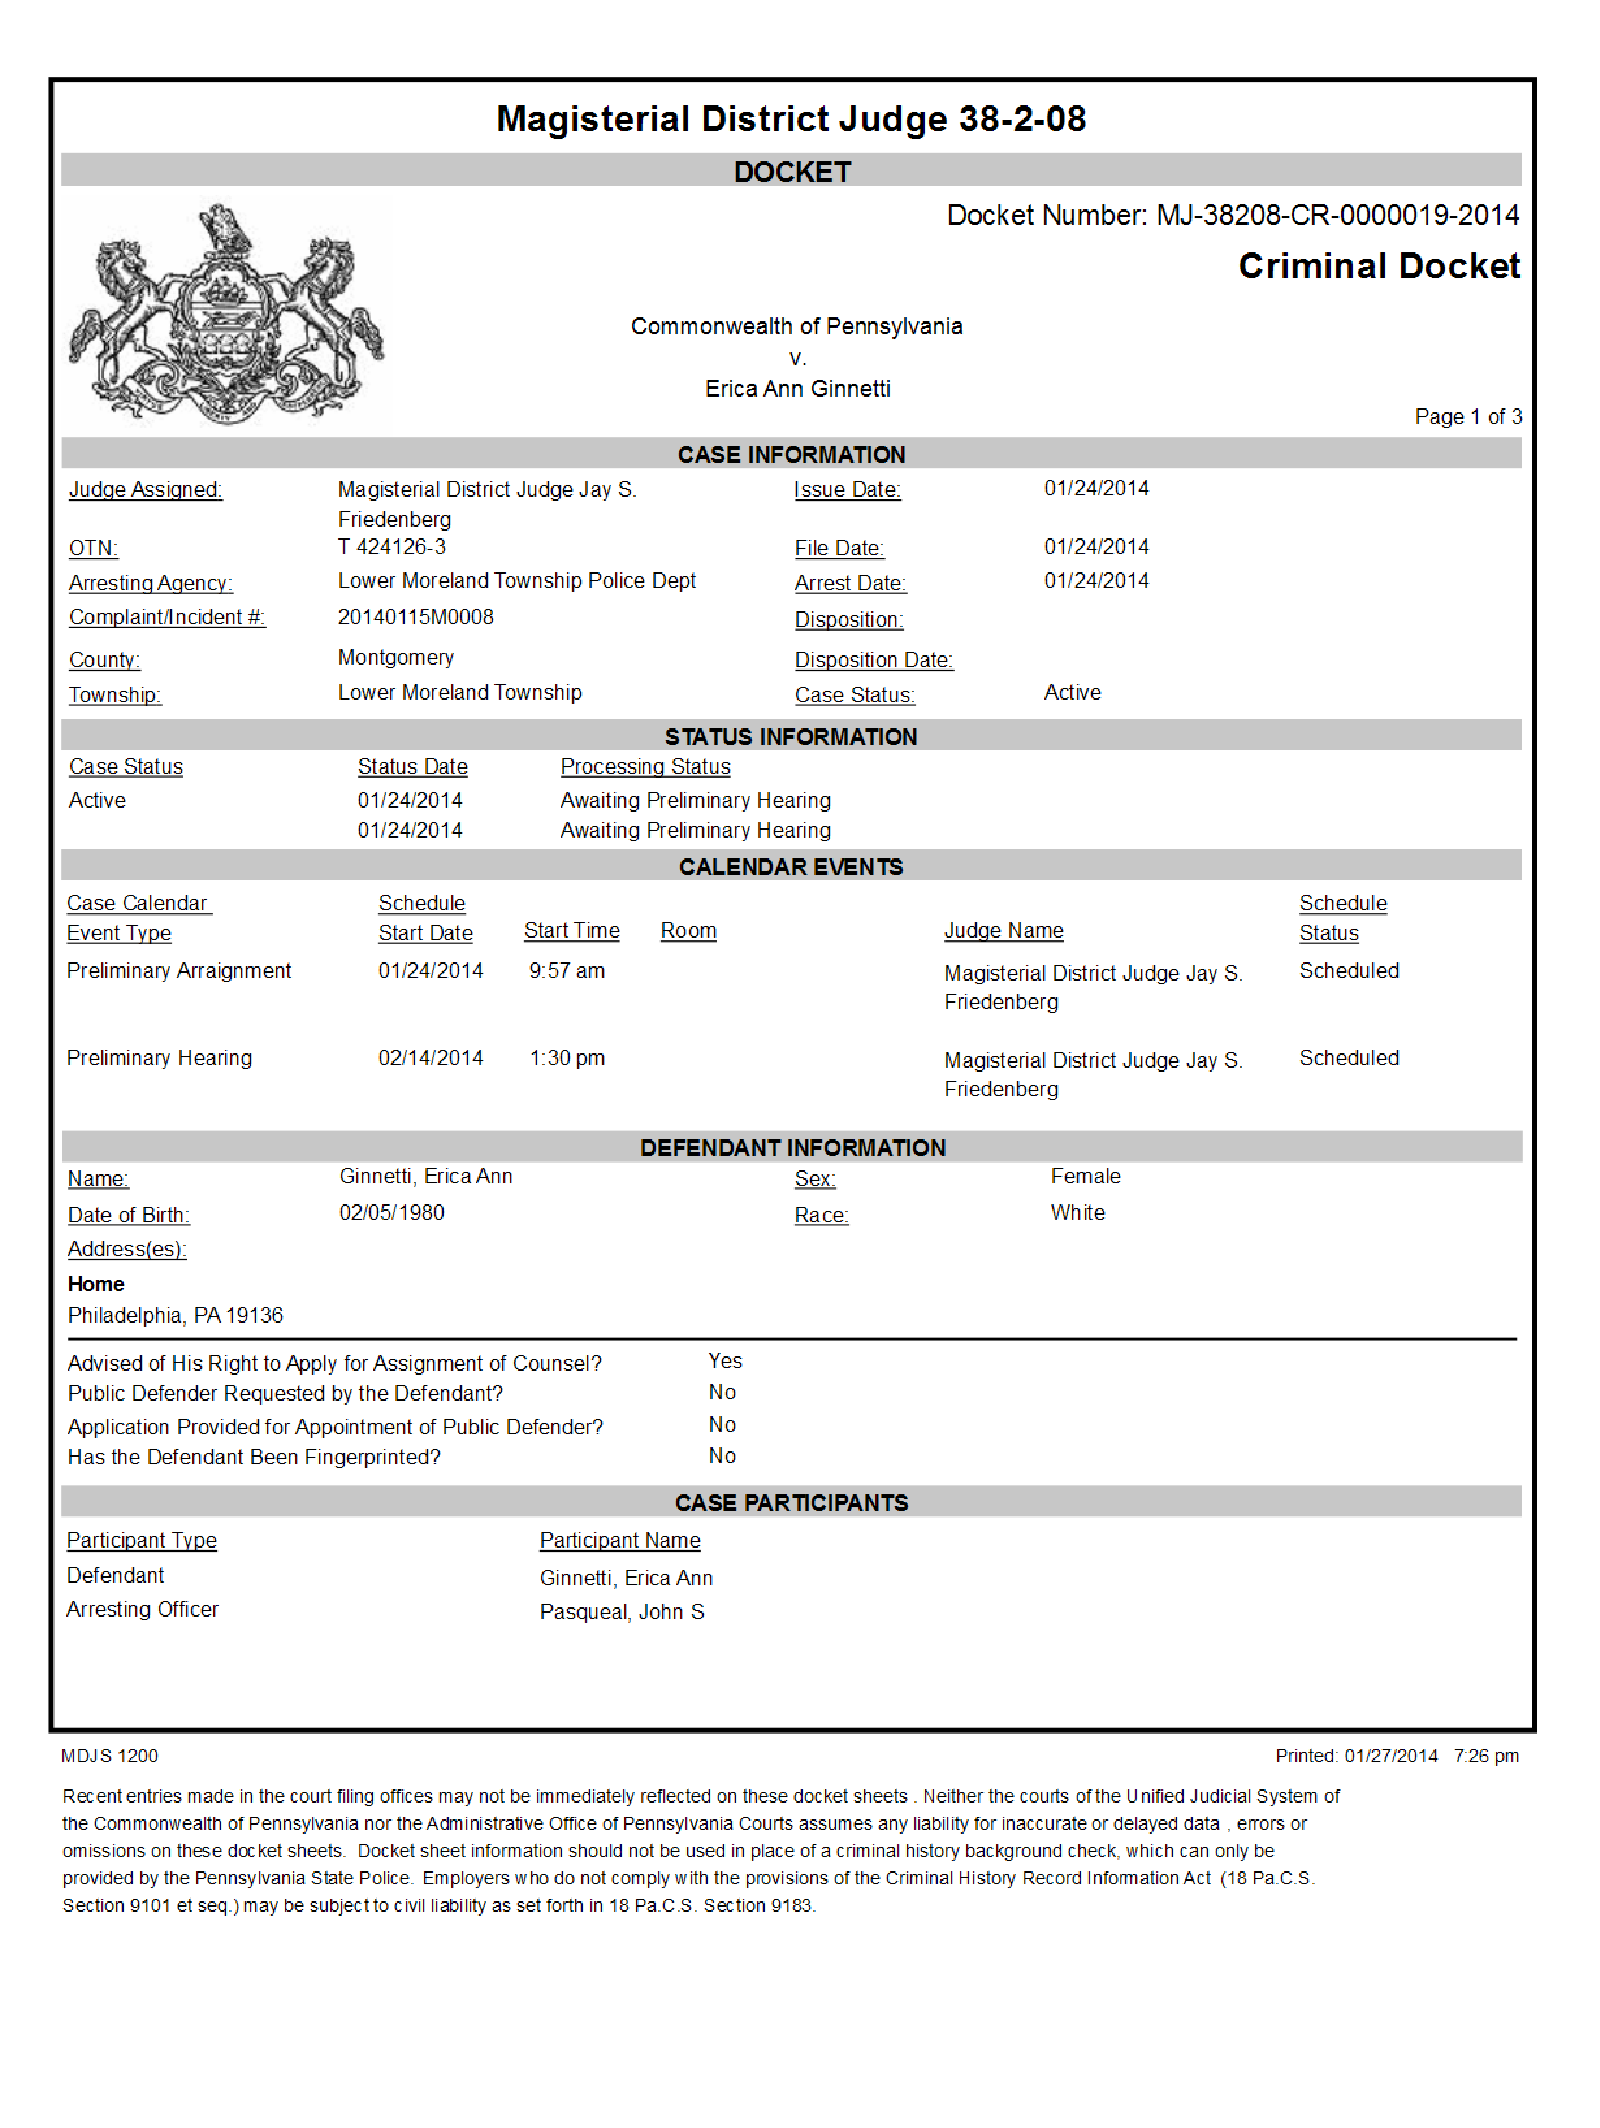 Copy of Ginnetti Erica Ann Criminal Docket1.png